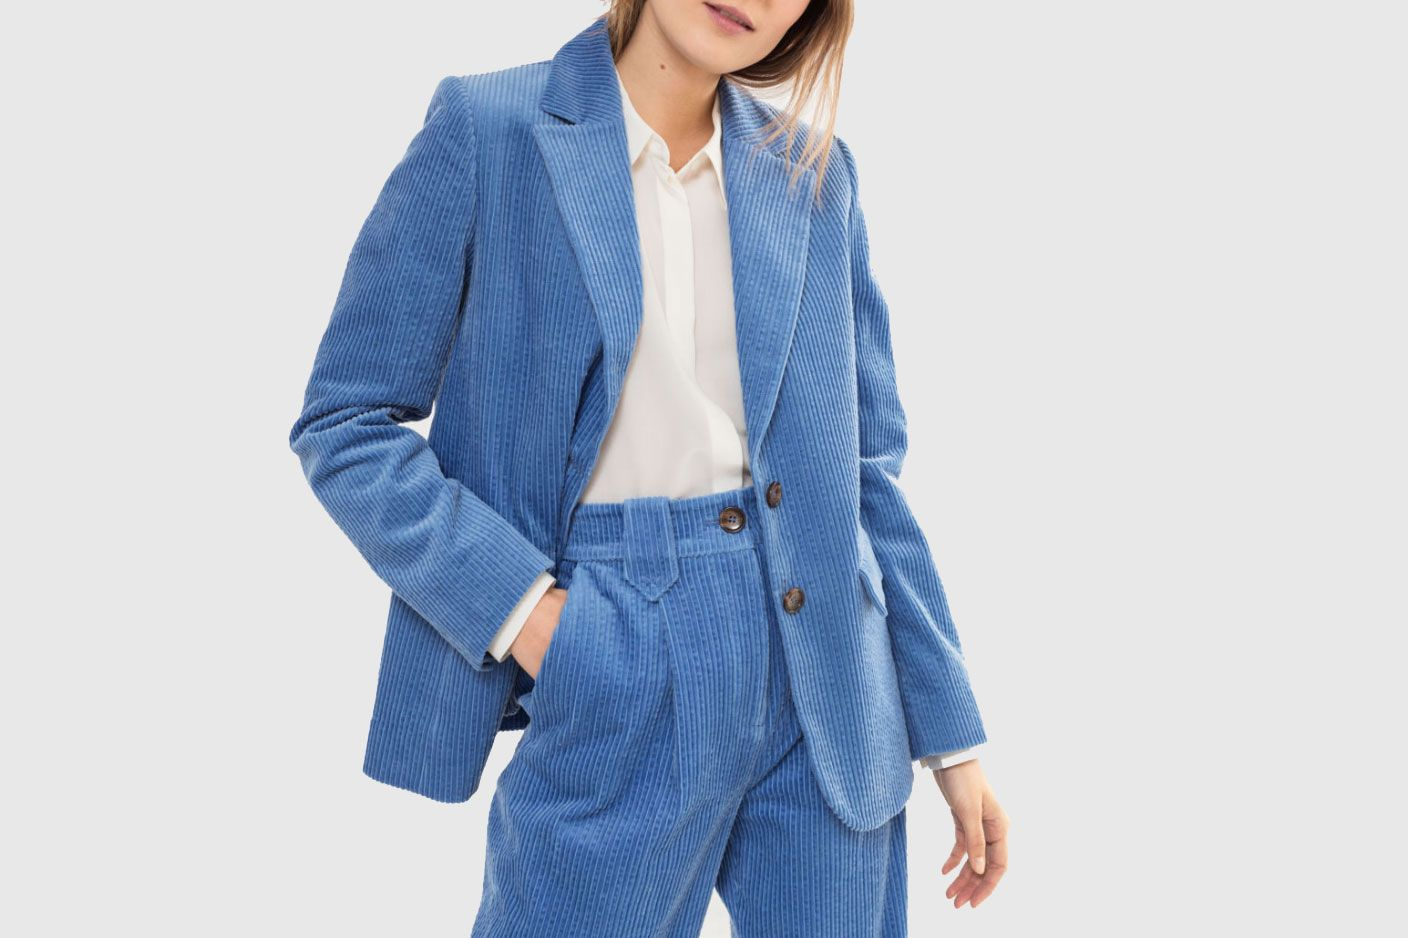 51015f058045 The 15 Best Work Blazers for the Professional Woman, 2018